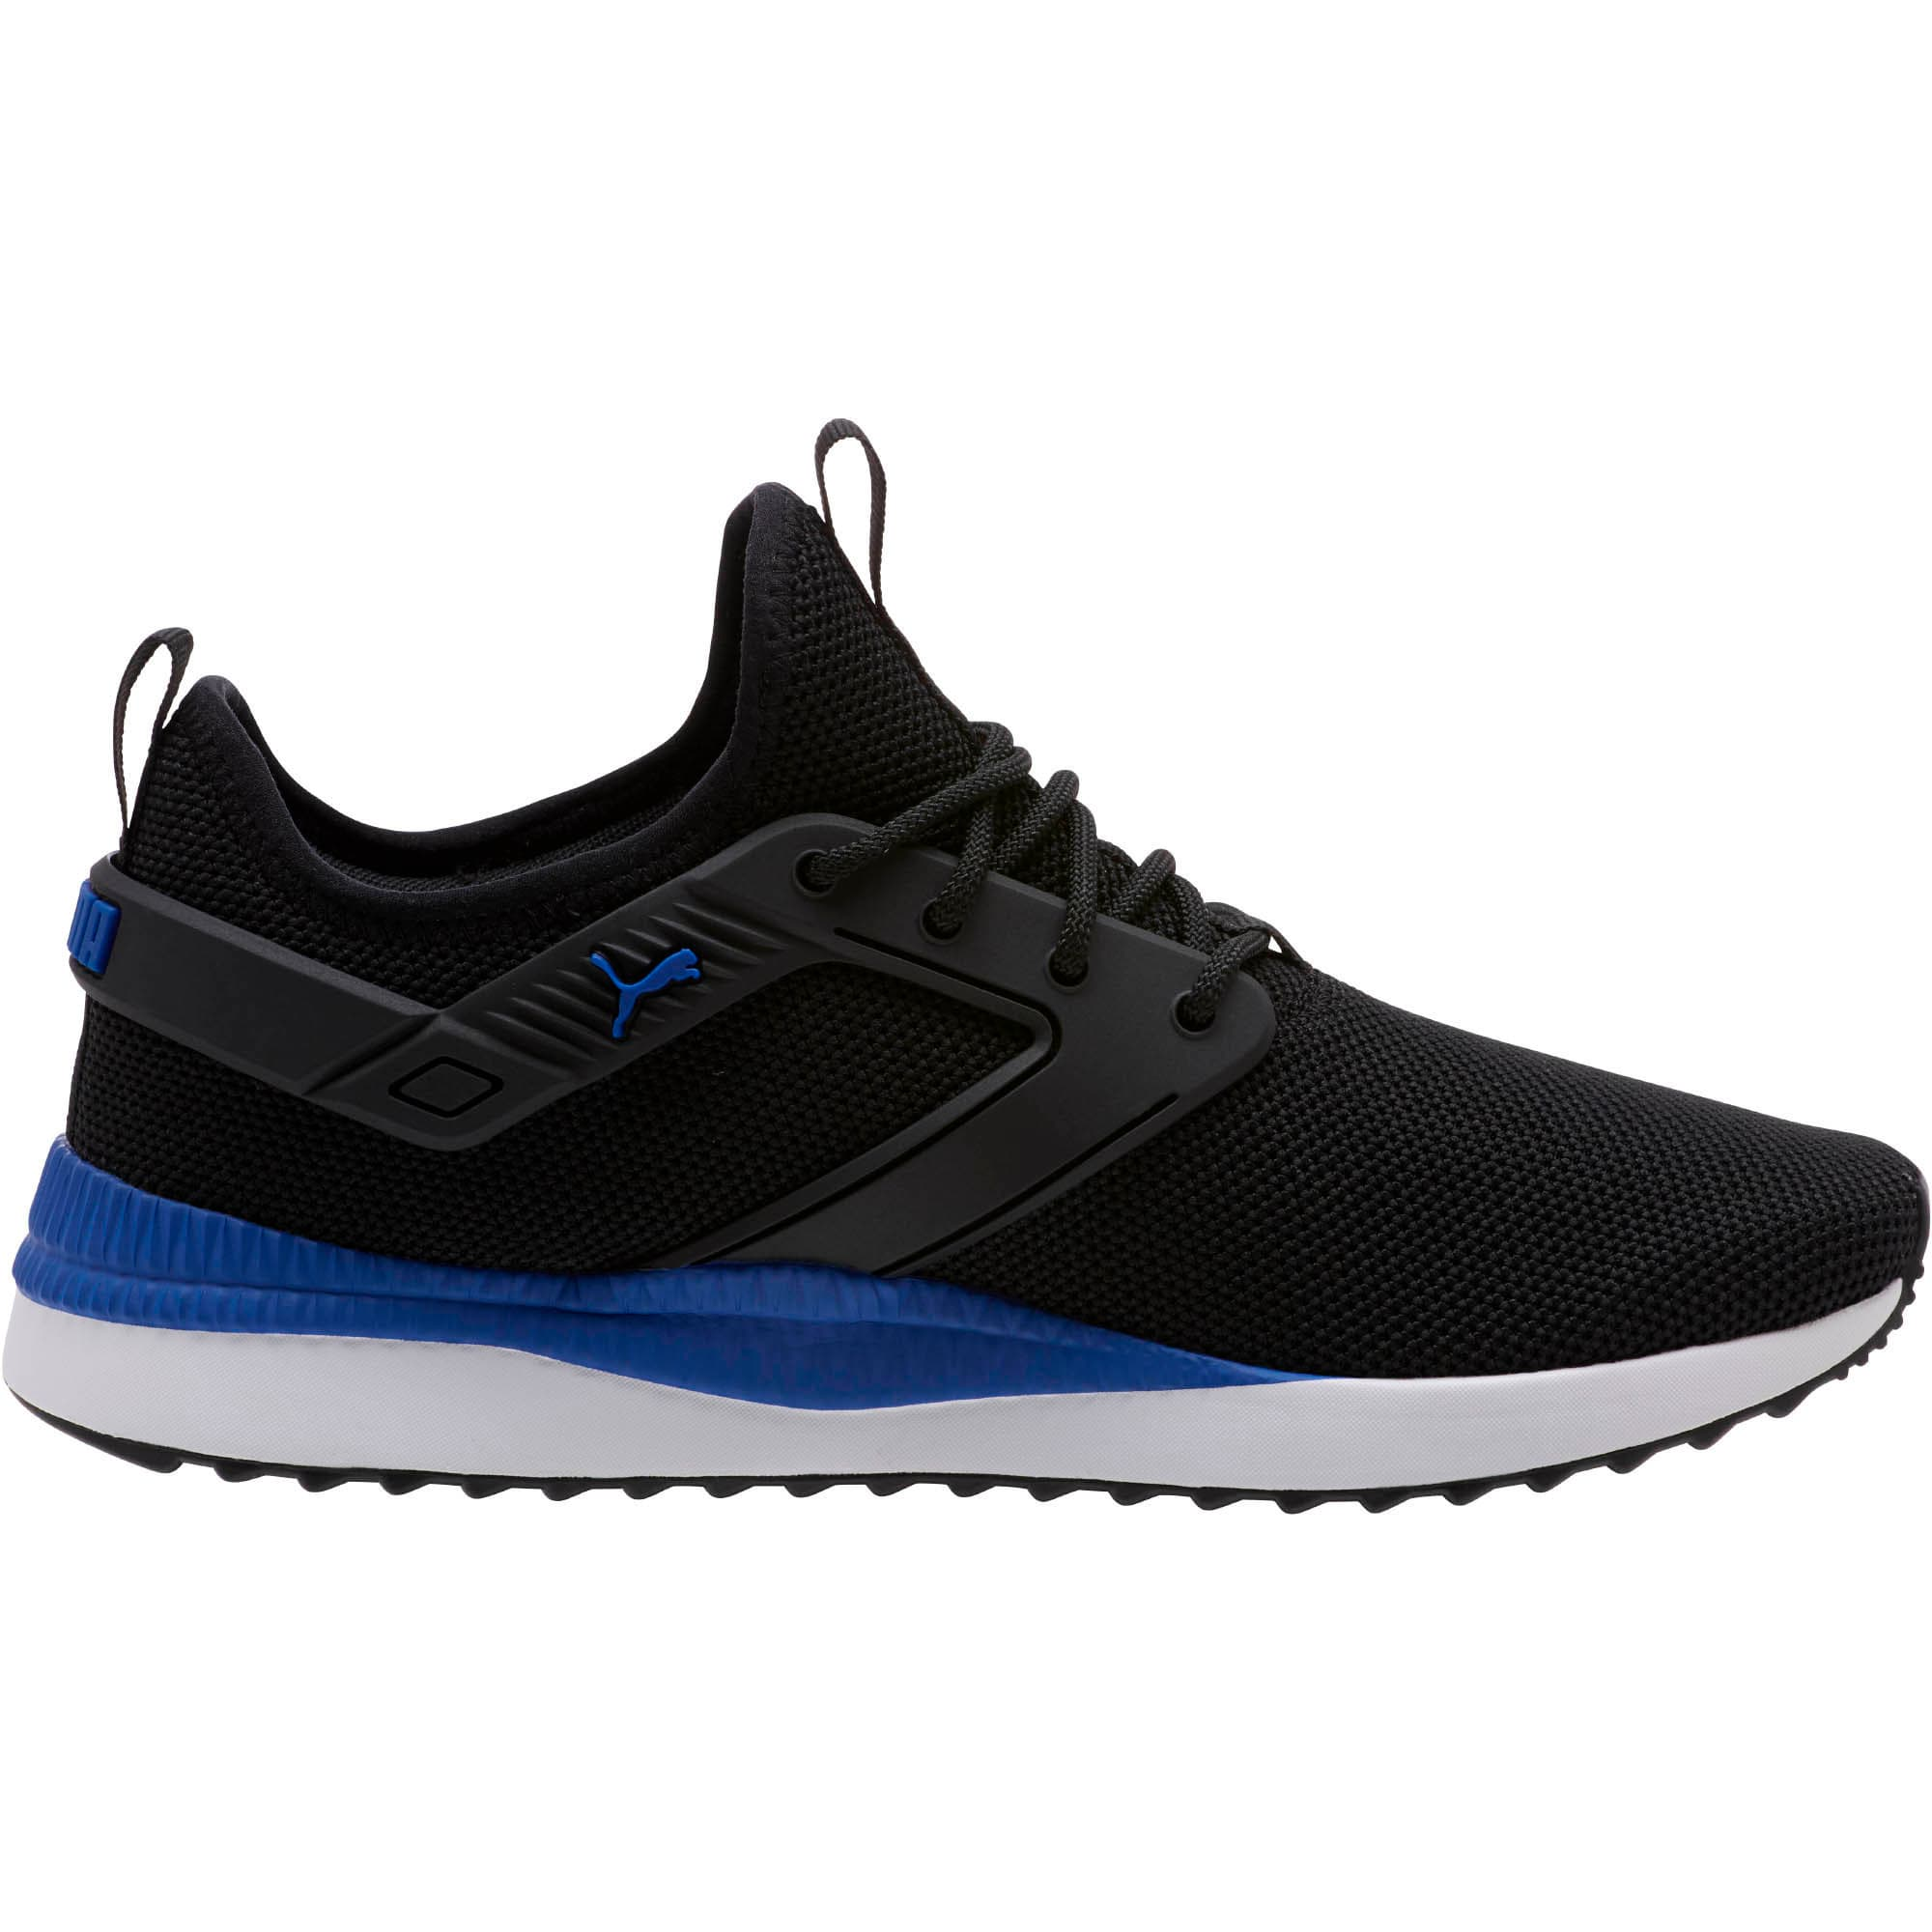 Thumbnail 3 of Pacer Next Excel Shoes, Puma Black-Surf The Web, medium-IND